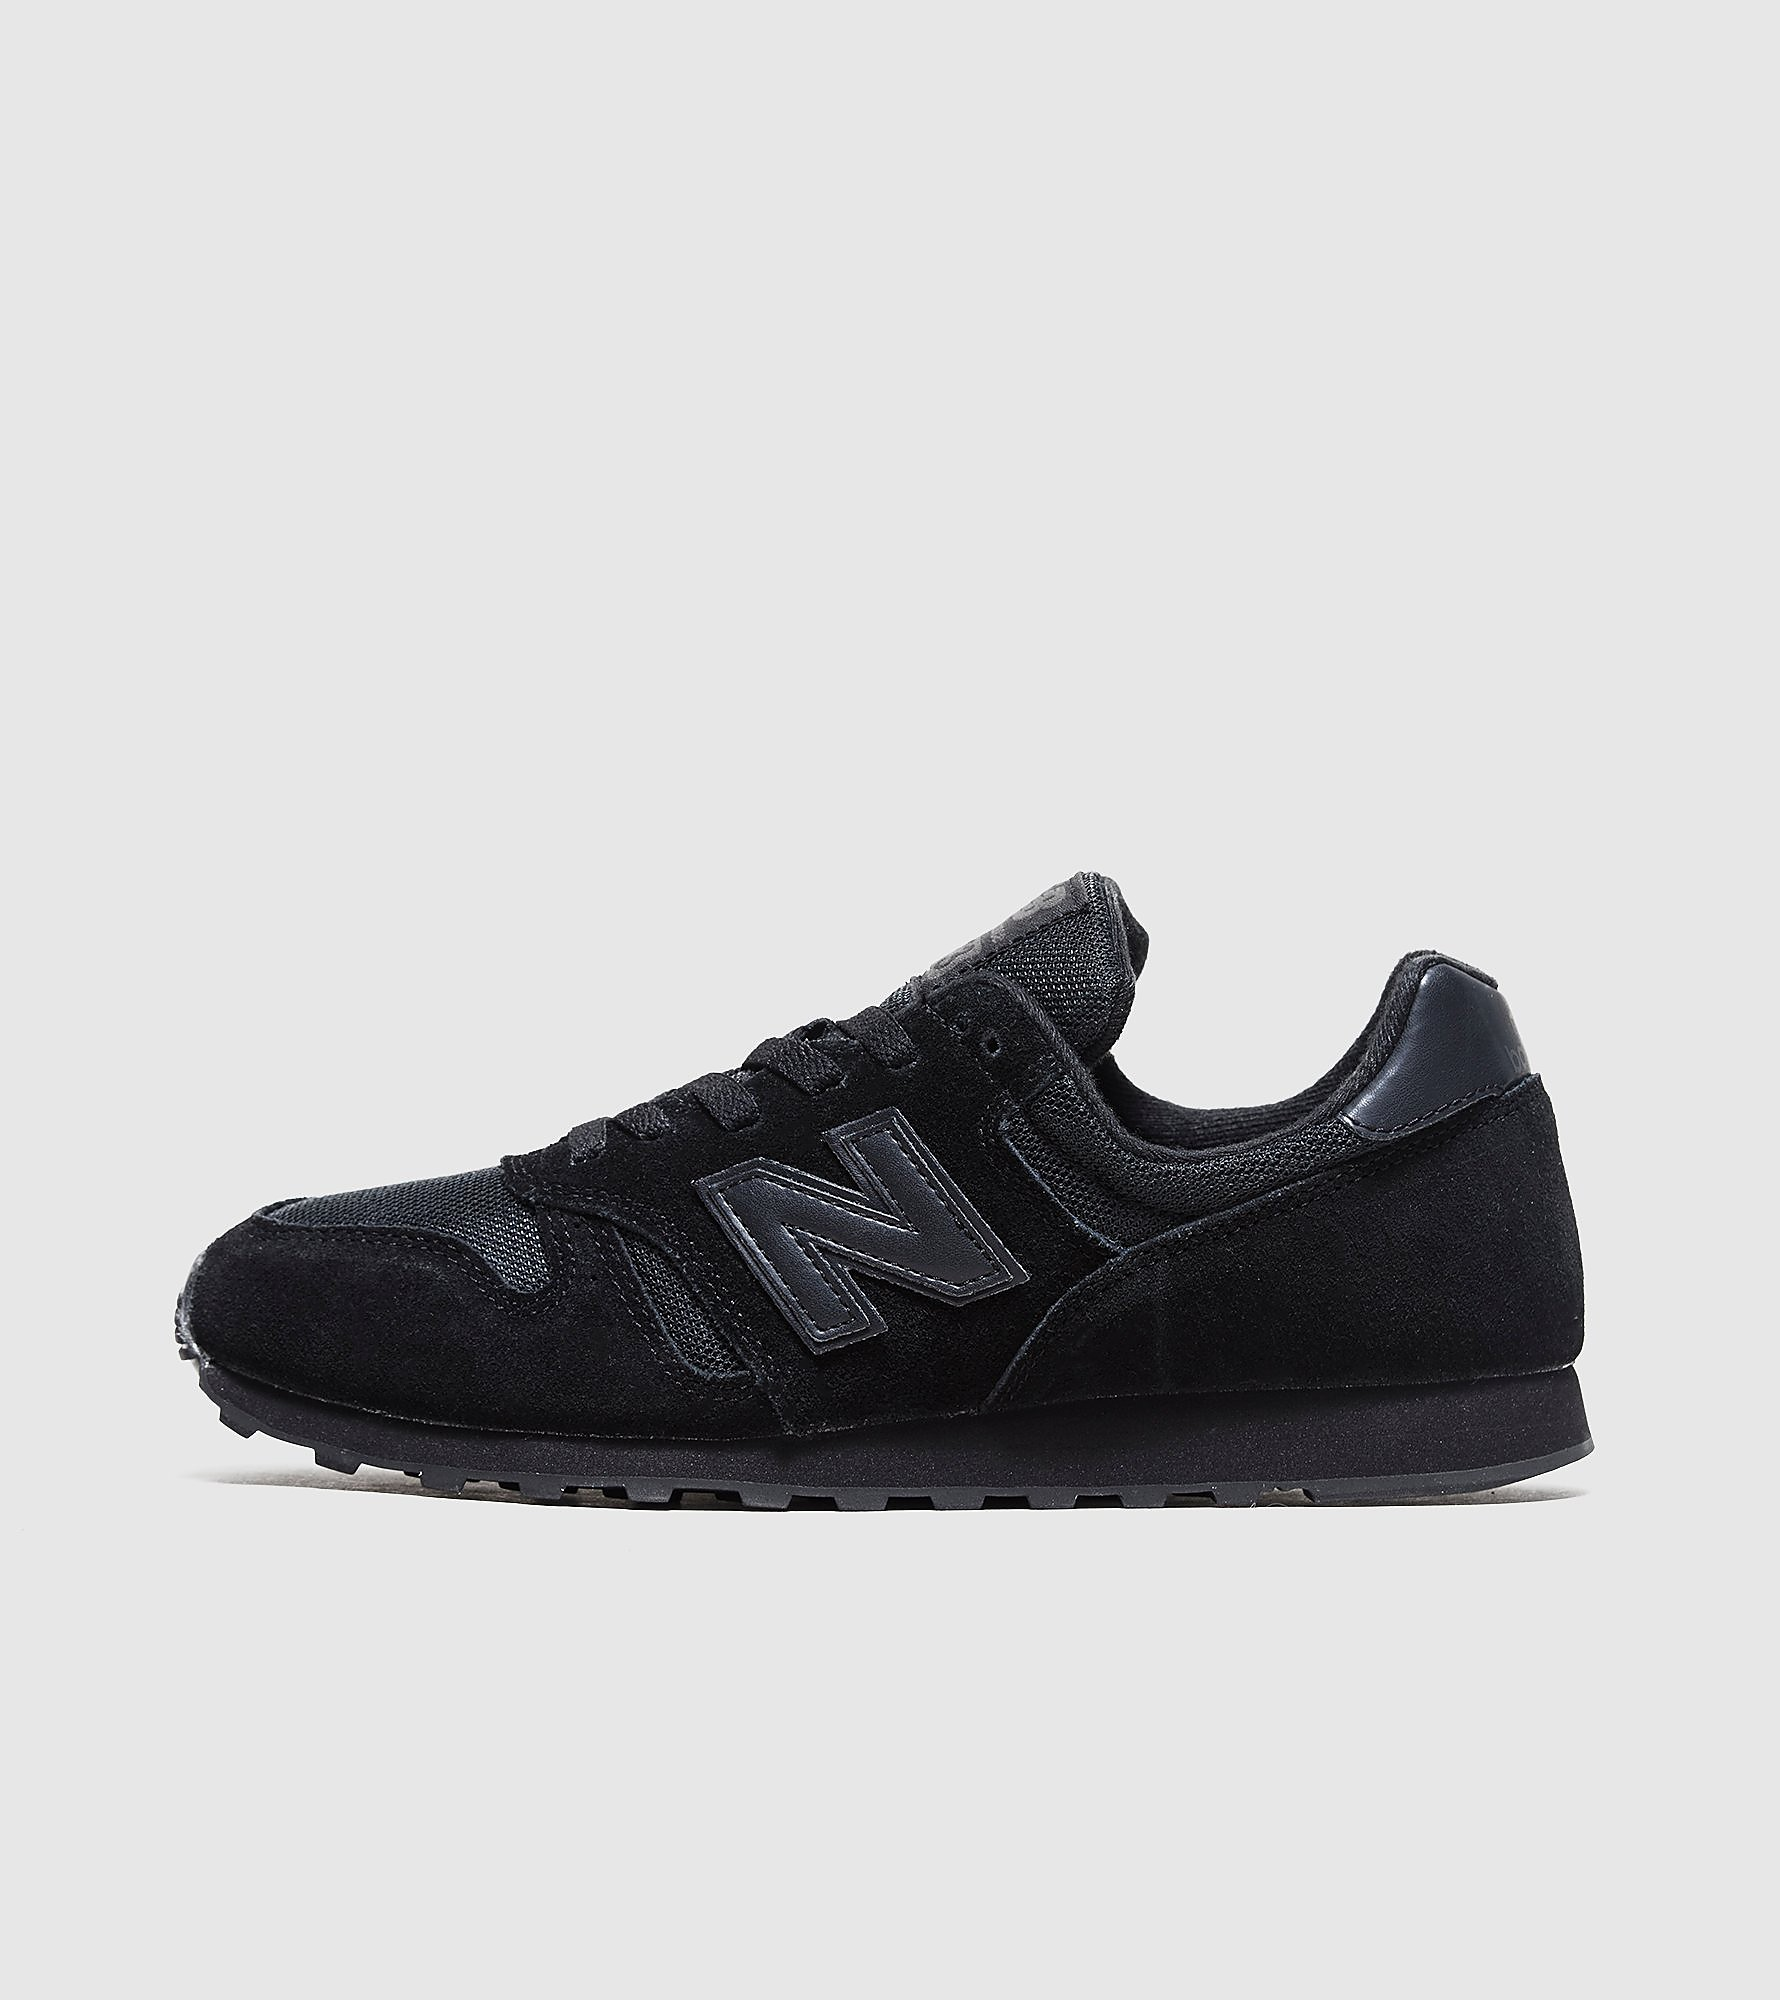 new balance 373 mujer opiniones